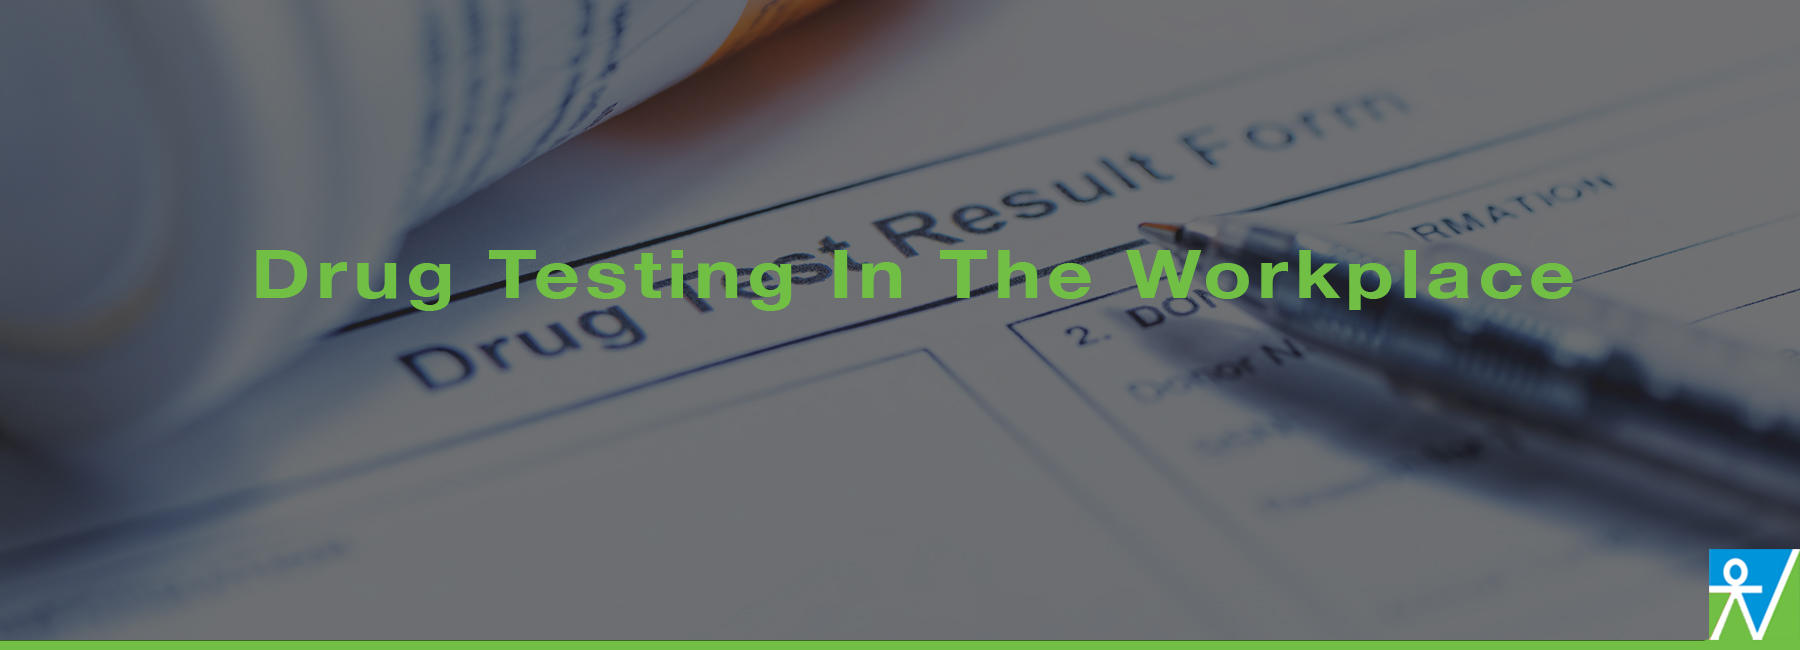 Drug testing at work and in the workplace | Auckland, New Zealand